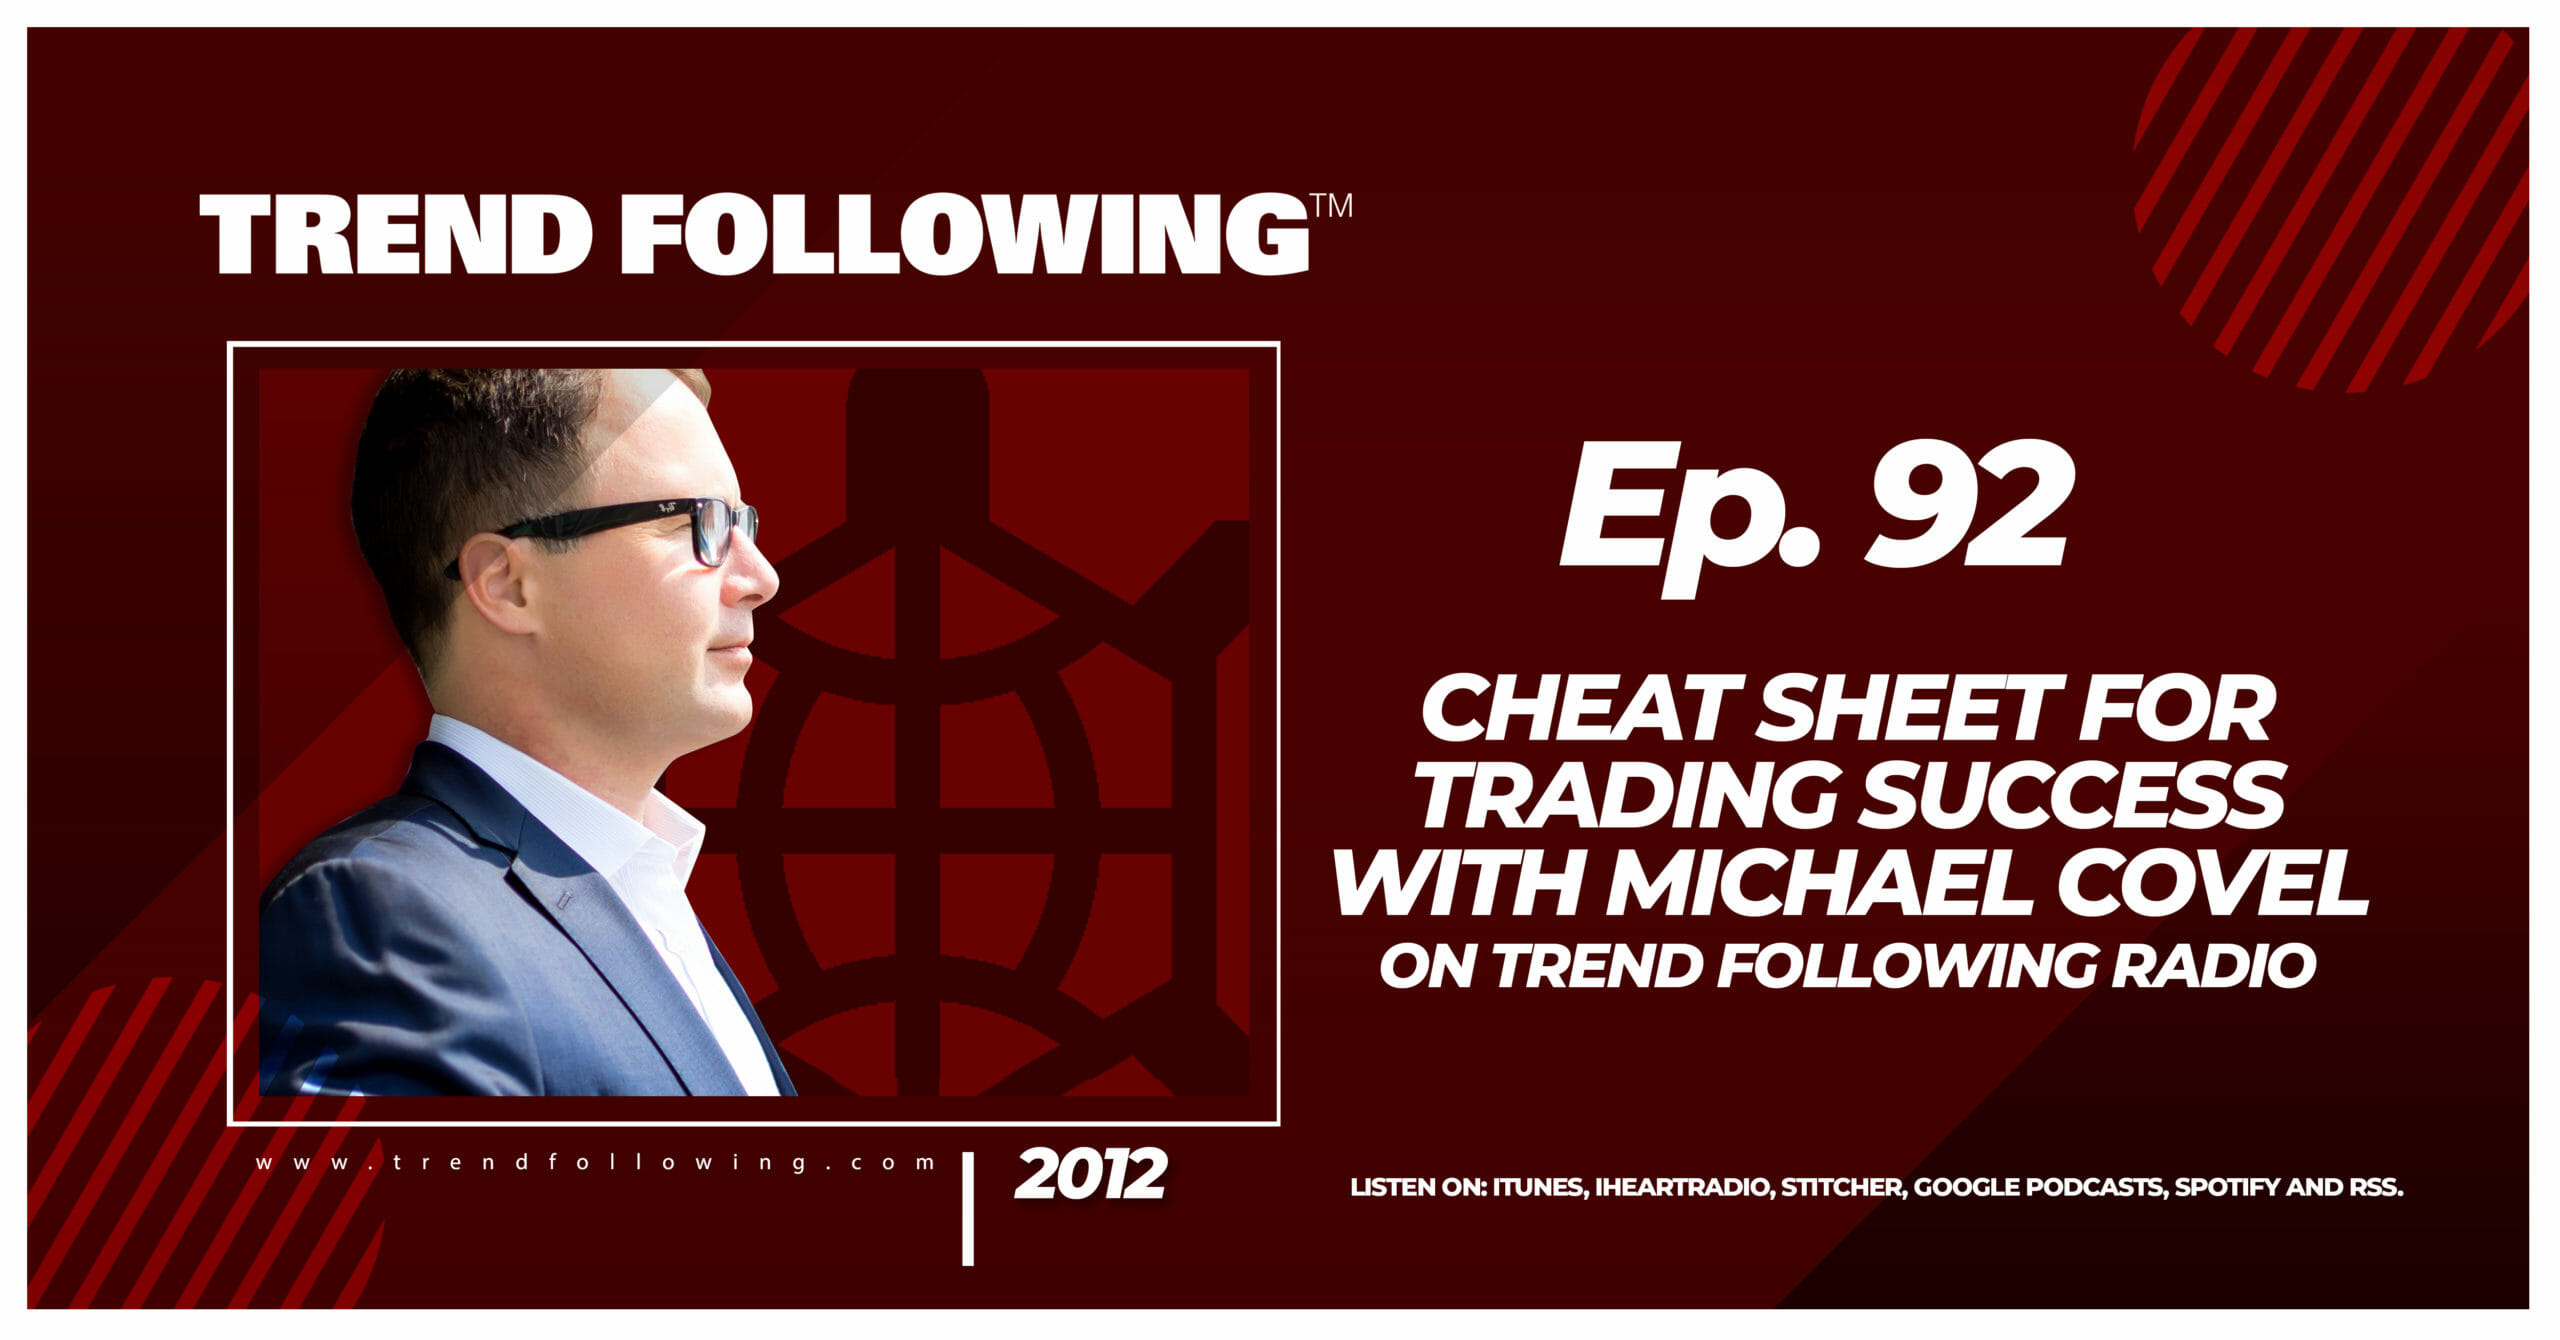 Cheat Sheet for Trading Success with Michael Covel on Trend Following Radio